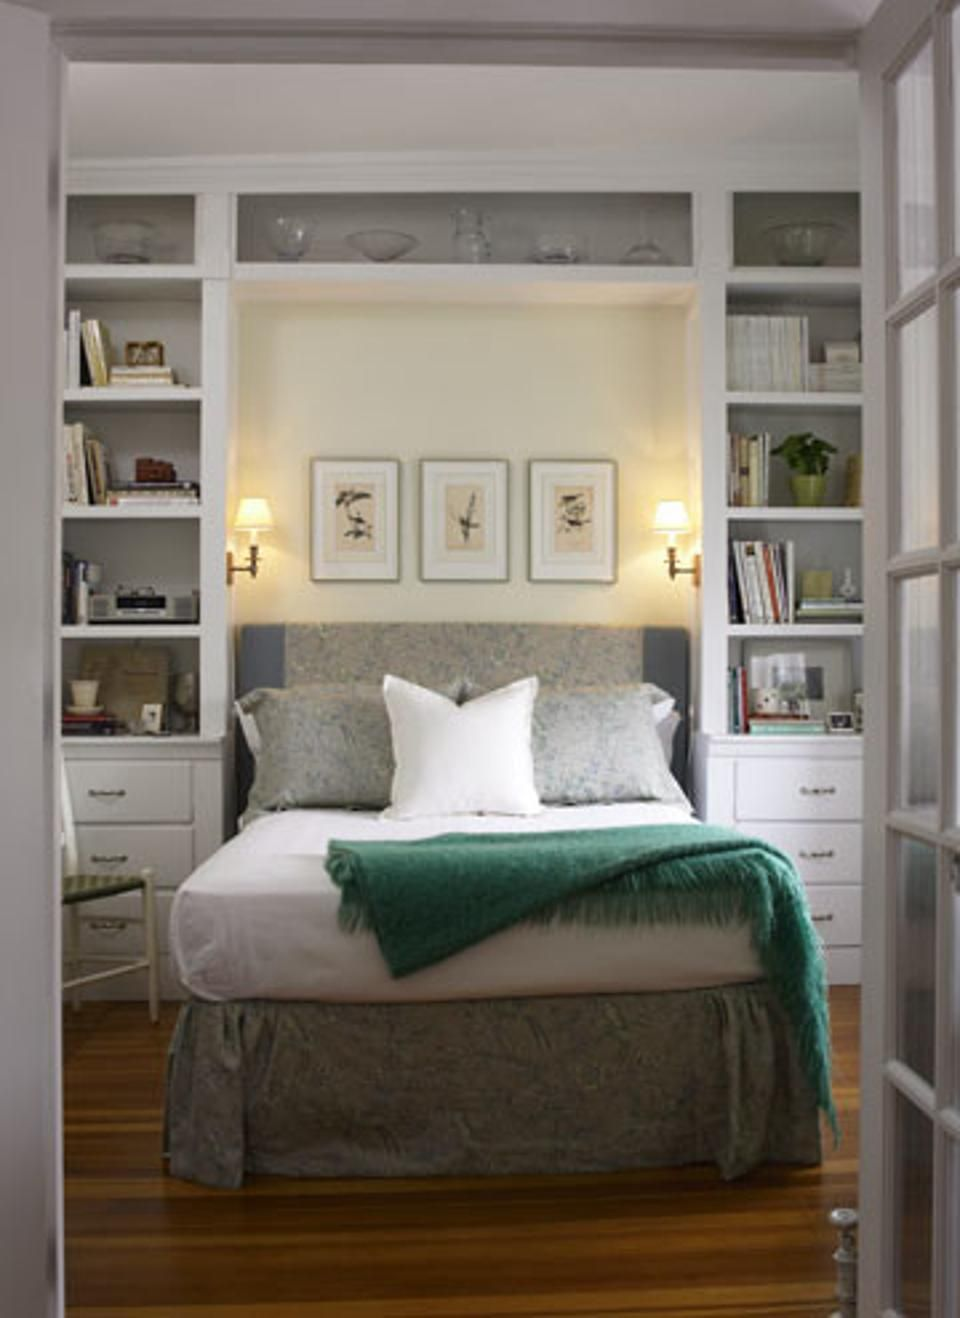 Maximize Small Bedroom 10 tips to make a small bedroom look great | compact, boudoir and